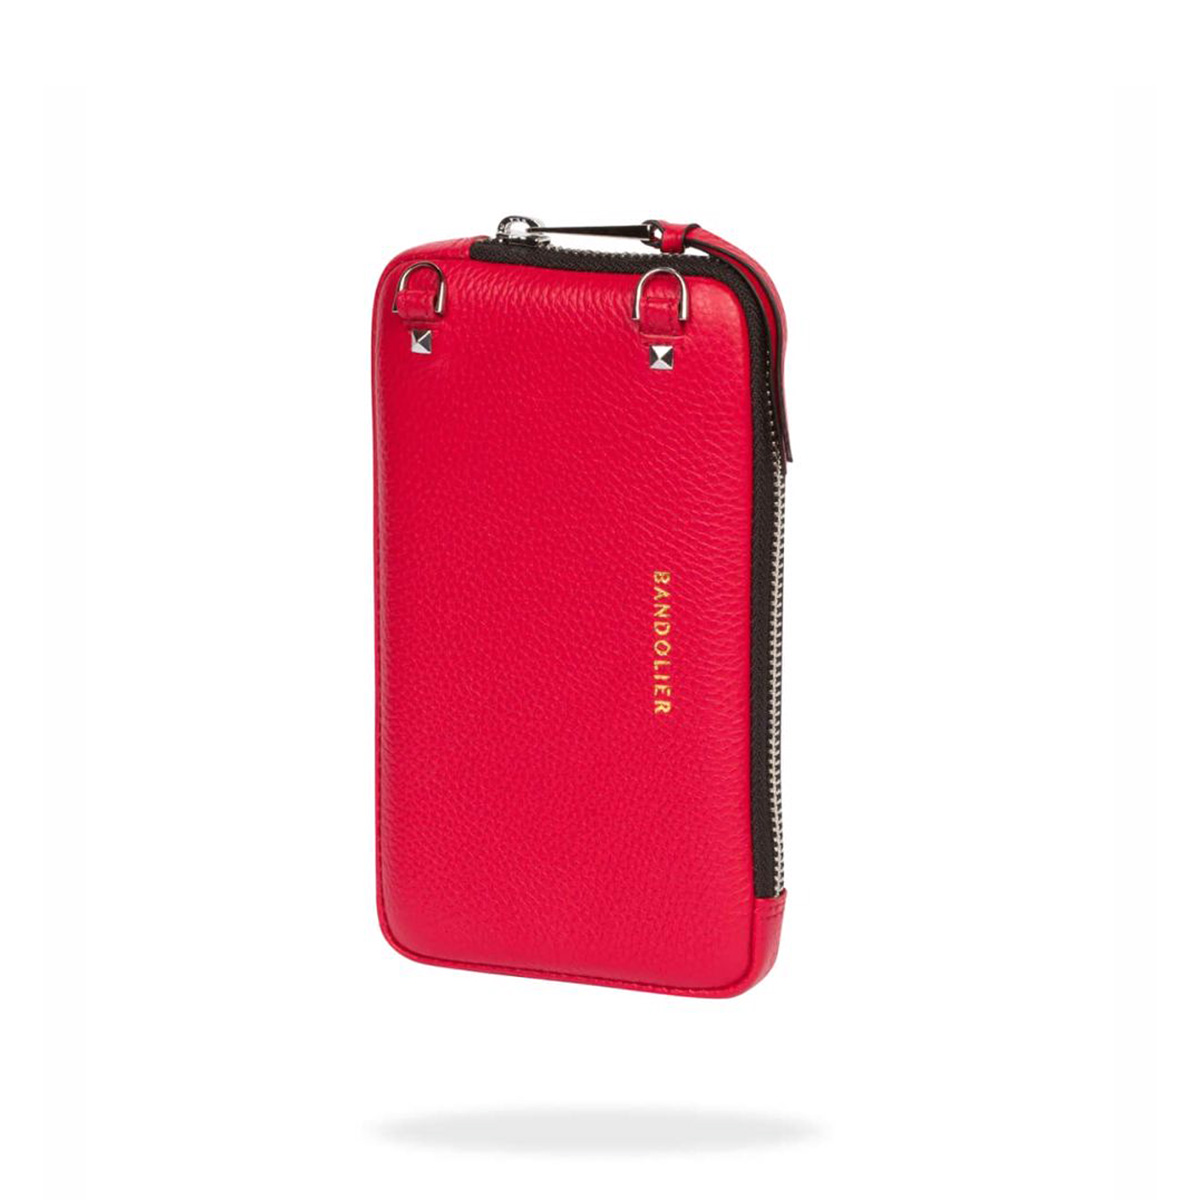 BANDOLIER EXPANDED RED POUCH バンドリヤー ポーチ スマホ 携帯 レディース レッド 21cas